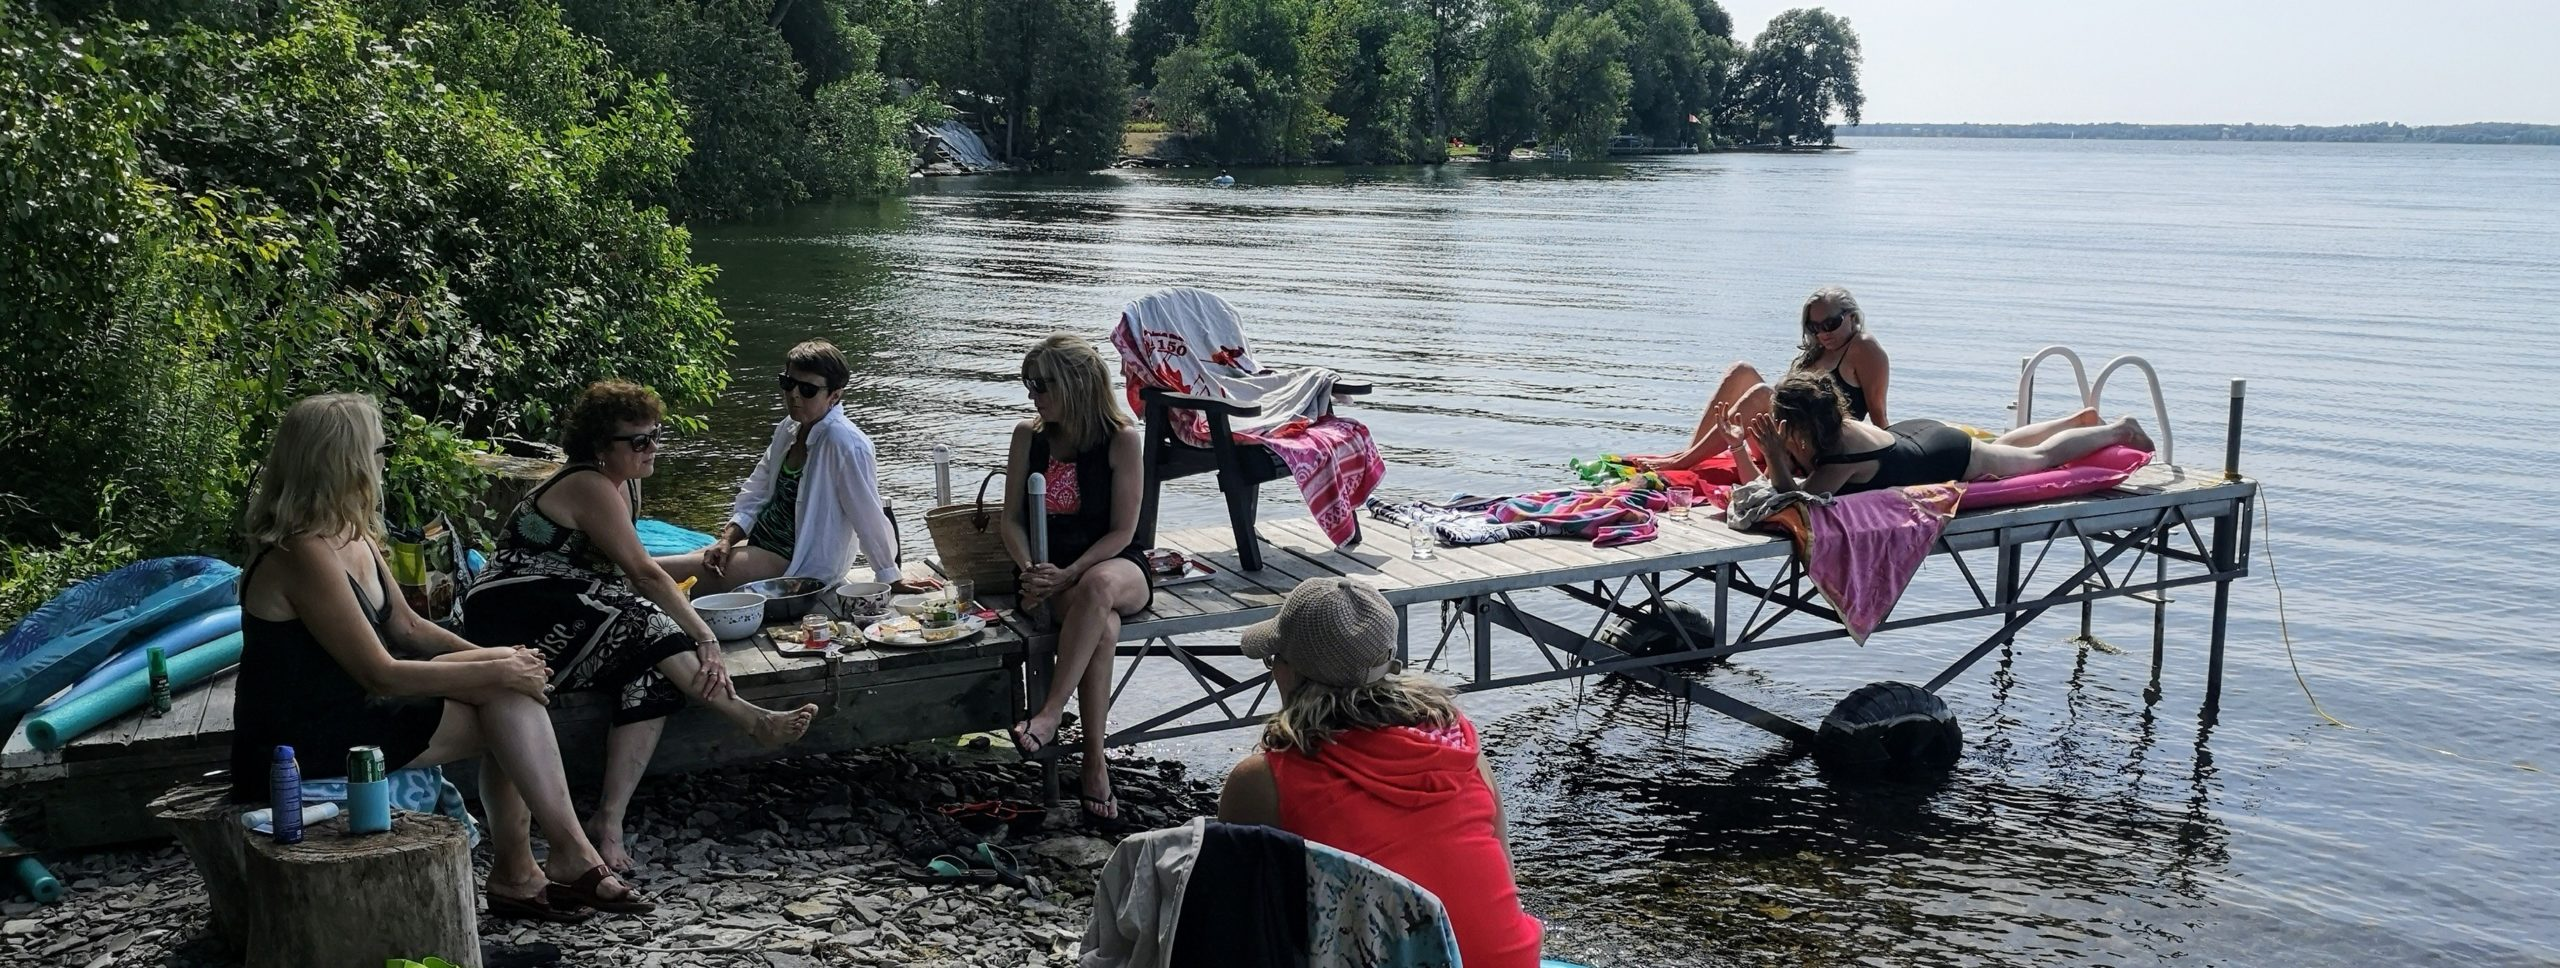 A group of women-friends chatting and hanging out by the lake